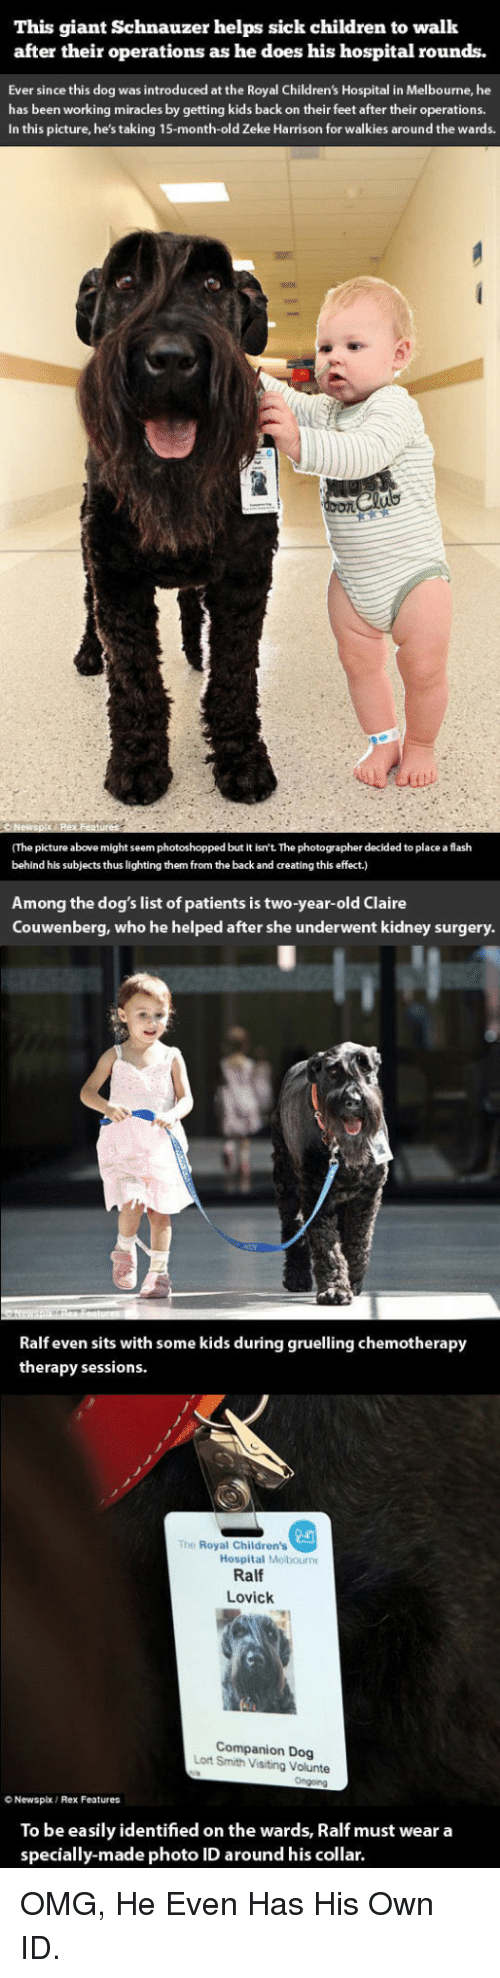 Children, Dogs, and Omg: This giant Schnauzer helps sick children to walk  after their operations as he does his hospital rounds.  Ever since this dog was introduced at the Royal Children's Hospital in Melbourne, he  has been working miracles by getting kids back on their feet after their operations  In this picture, he's taking 15-month-old Zeke Harrison for walkies around the wards.  (The picture above might seem photoshopped but it isn't The photographer decided to place a flash  behind his subjects thus lighting them from the back and creating this effect.)  Among the dog's list of patients is two-year-old Claire  Couwenberg, who he helped after she underwent kidney surgery.  Ralf even sits with some kids during gruelling chemotherapy  therapy sessions.  2a  Hospital Melbourn  The Royal Children's  Ralf  Lovick  Companion Dog  Lort Smith Visiting Volunte  O Newspx  Rex Features  To be easily identified on the wards, Ralf must wear a  specially-made photo ID around his collar. <p>OMG, He Even Has His Own ID.</p>